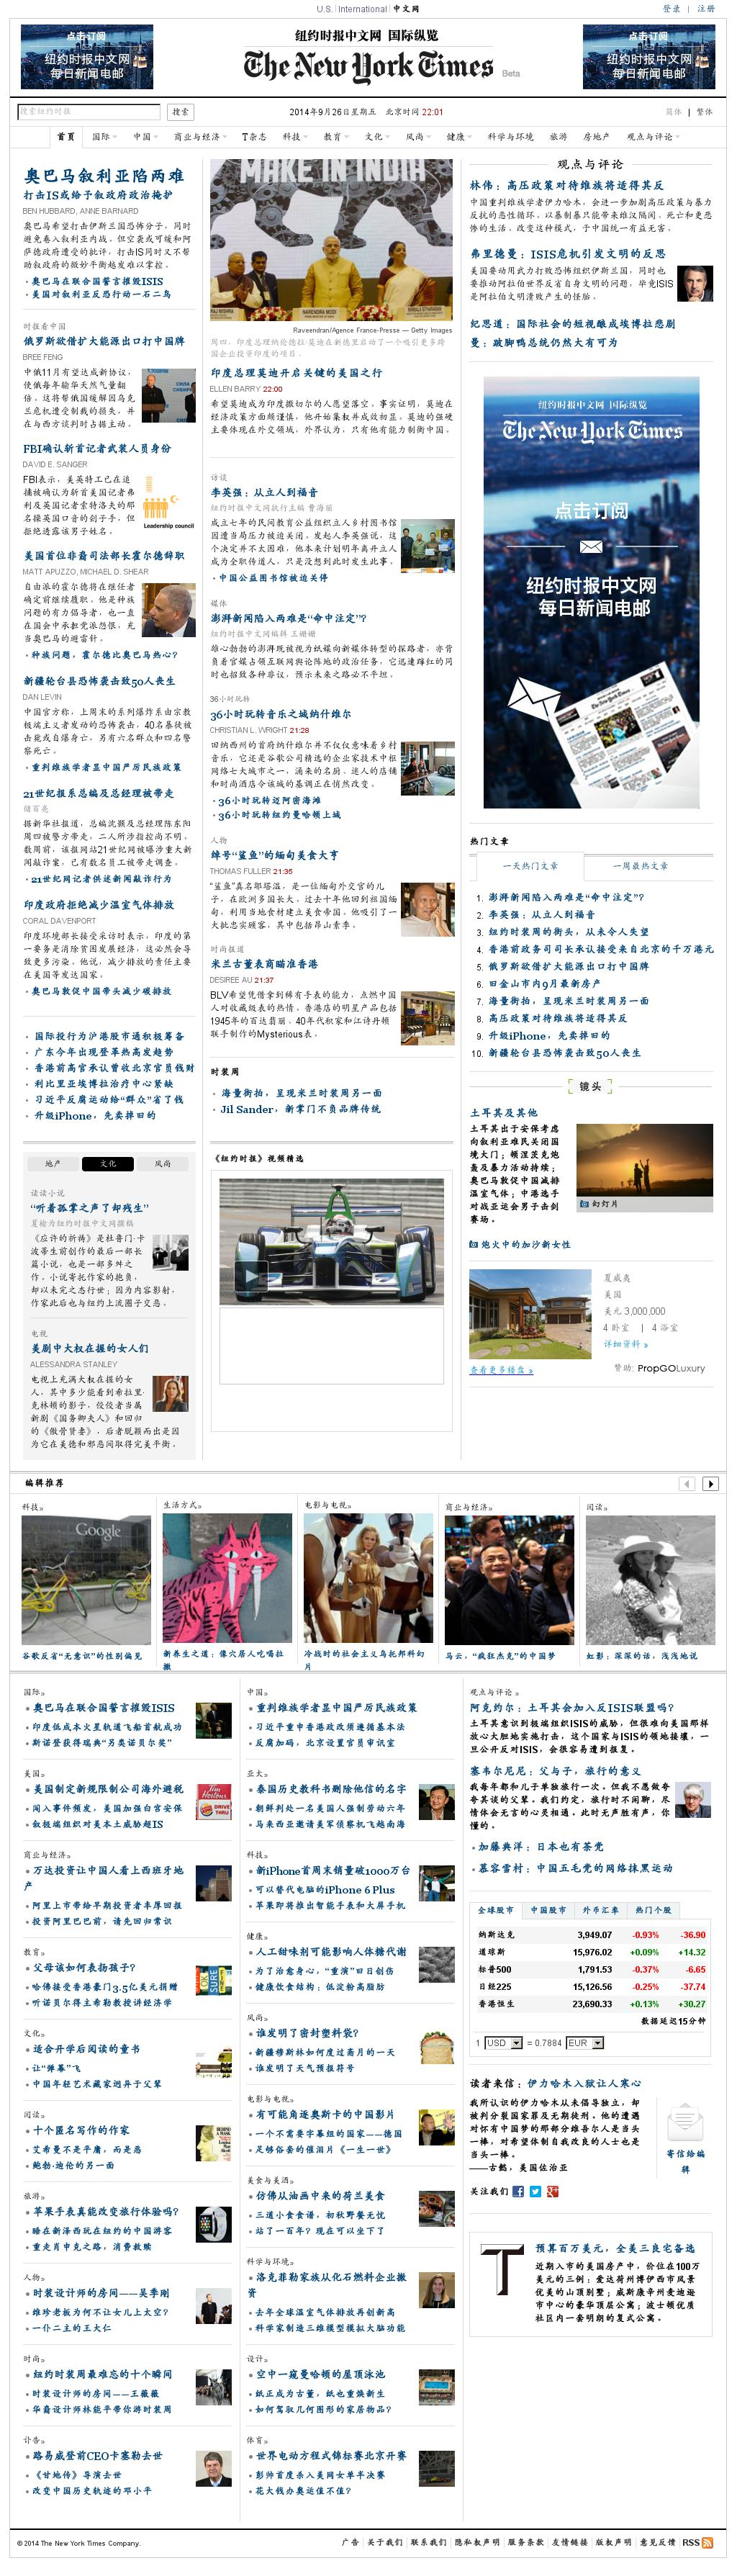 The New York Times (Chinese) at Saturday Sept. 27, 2014, 11:10 a.m. UTC